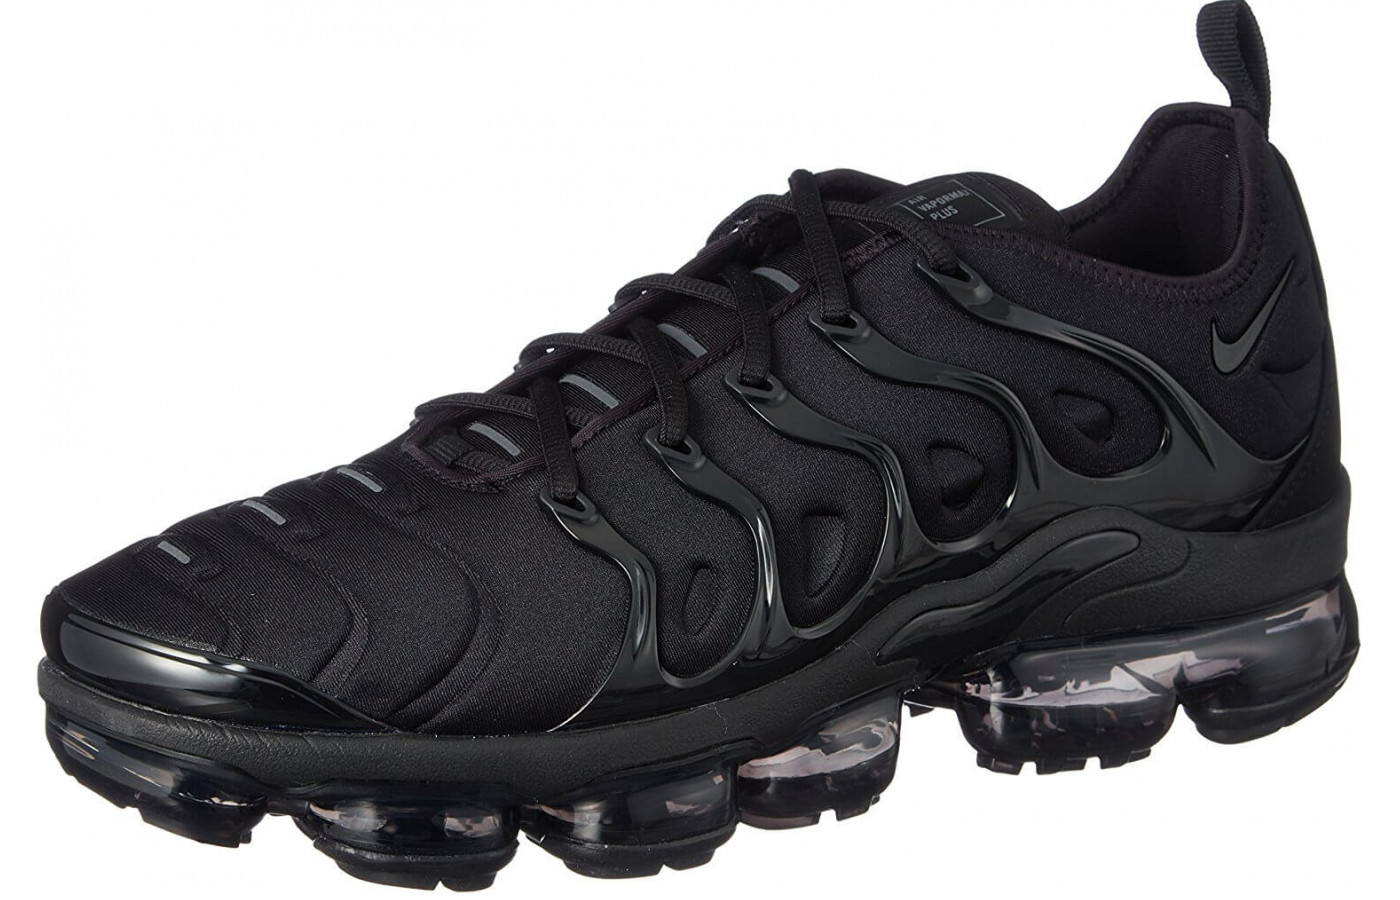 d0d036bbb47 Nike Air VaporMax Plus Review - Buy or Not in Apr 2019